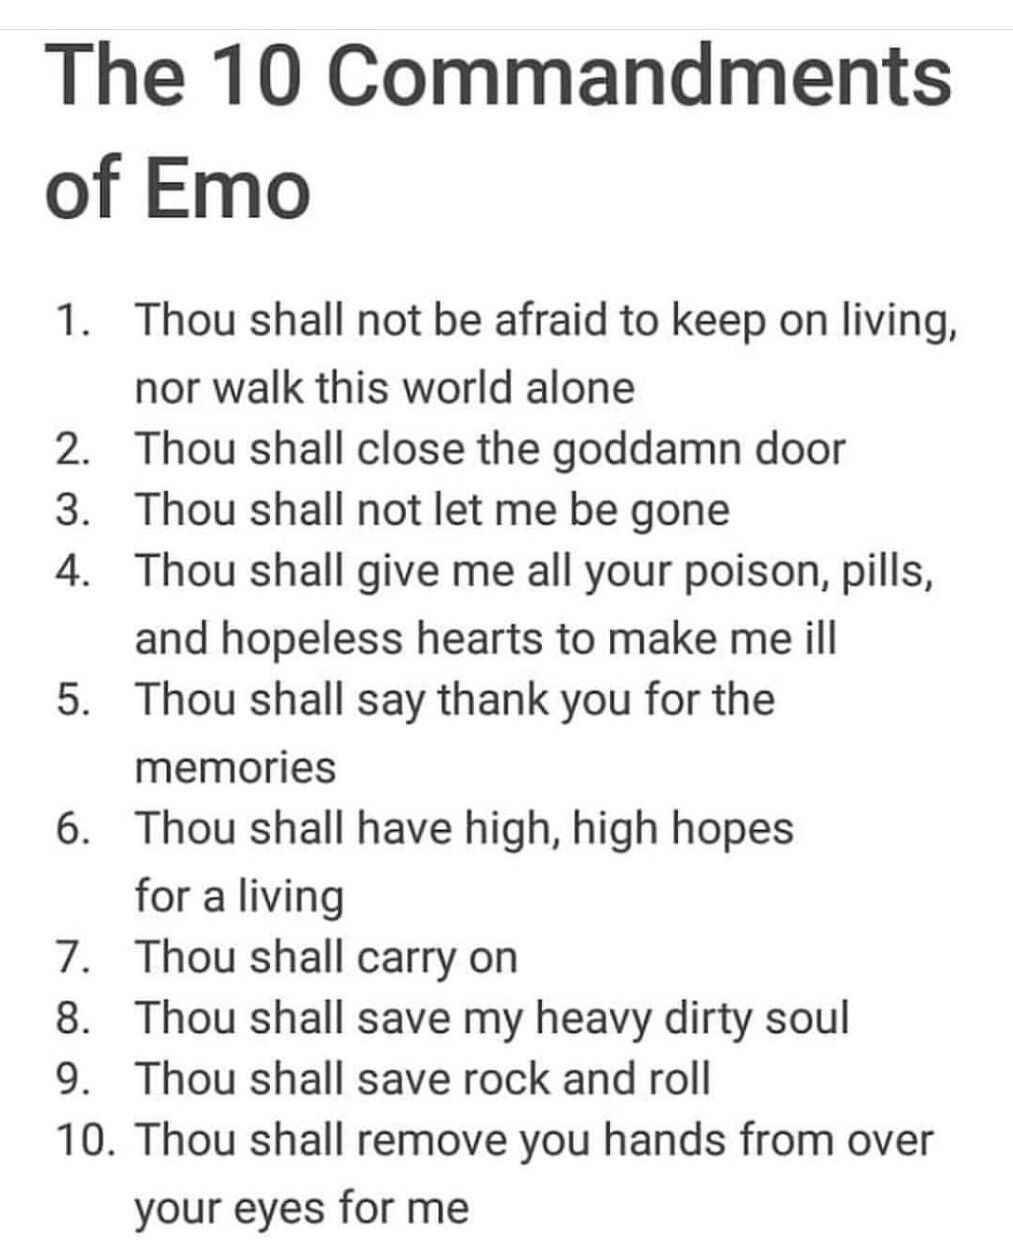 If you understand these and aren't emo you have power. I am most powerful being